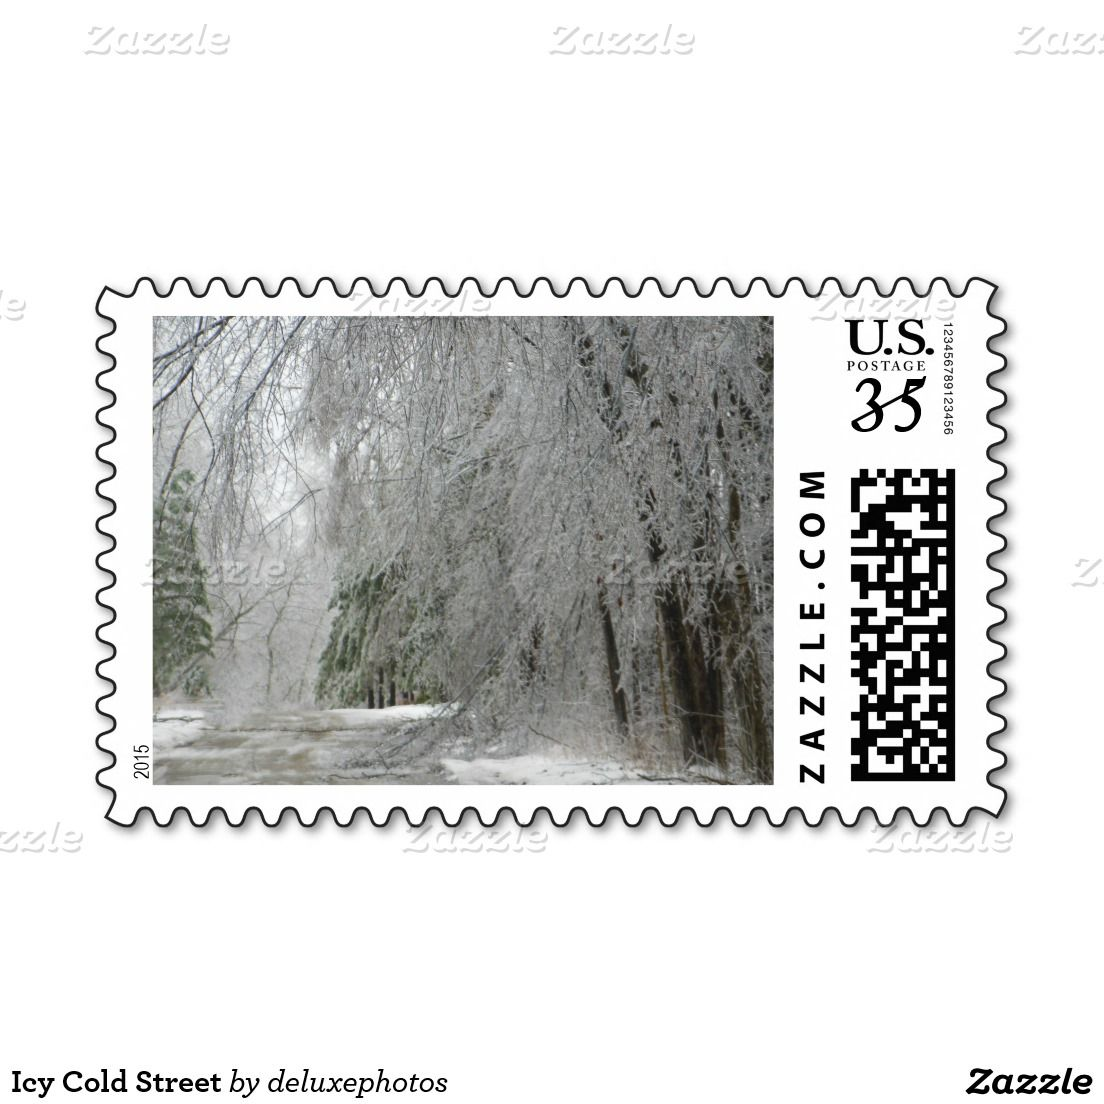 Icy Cold Street Postage Stamp